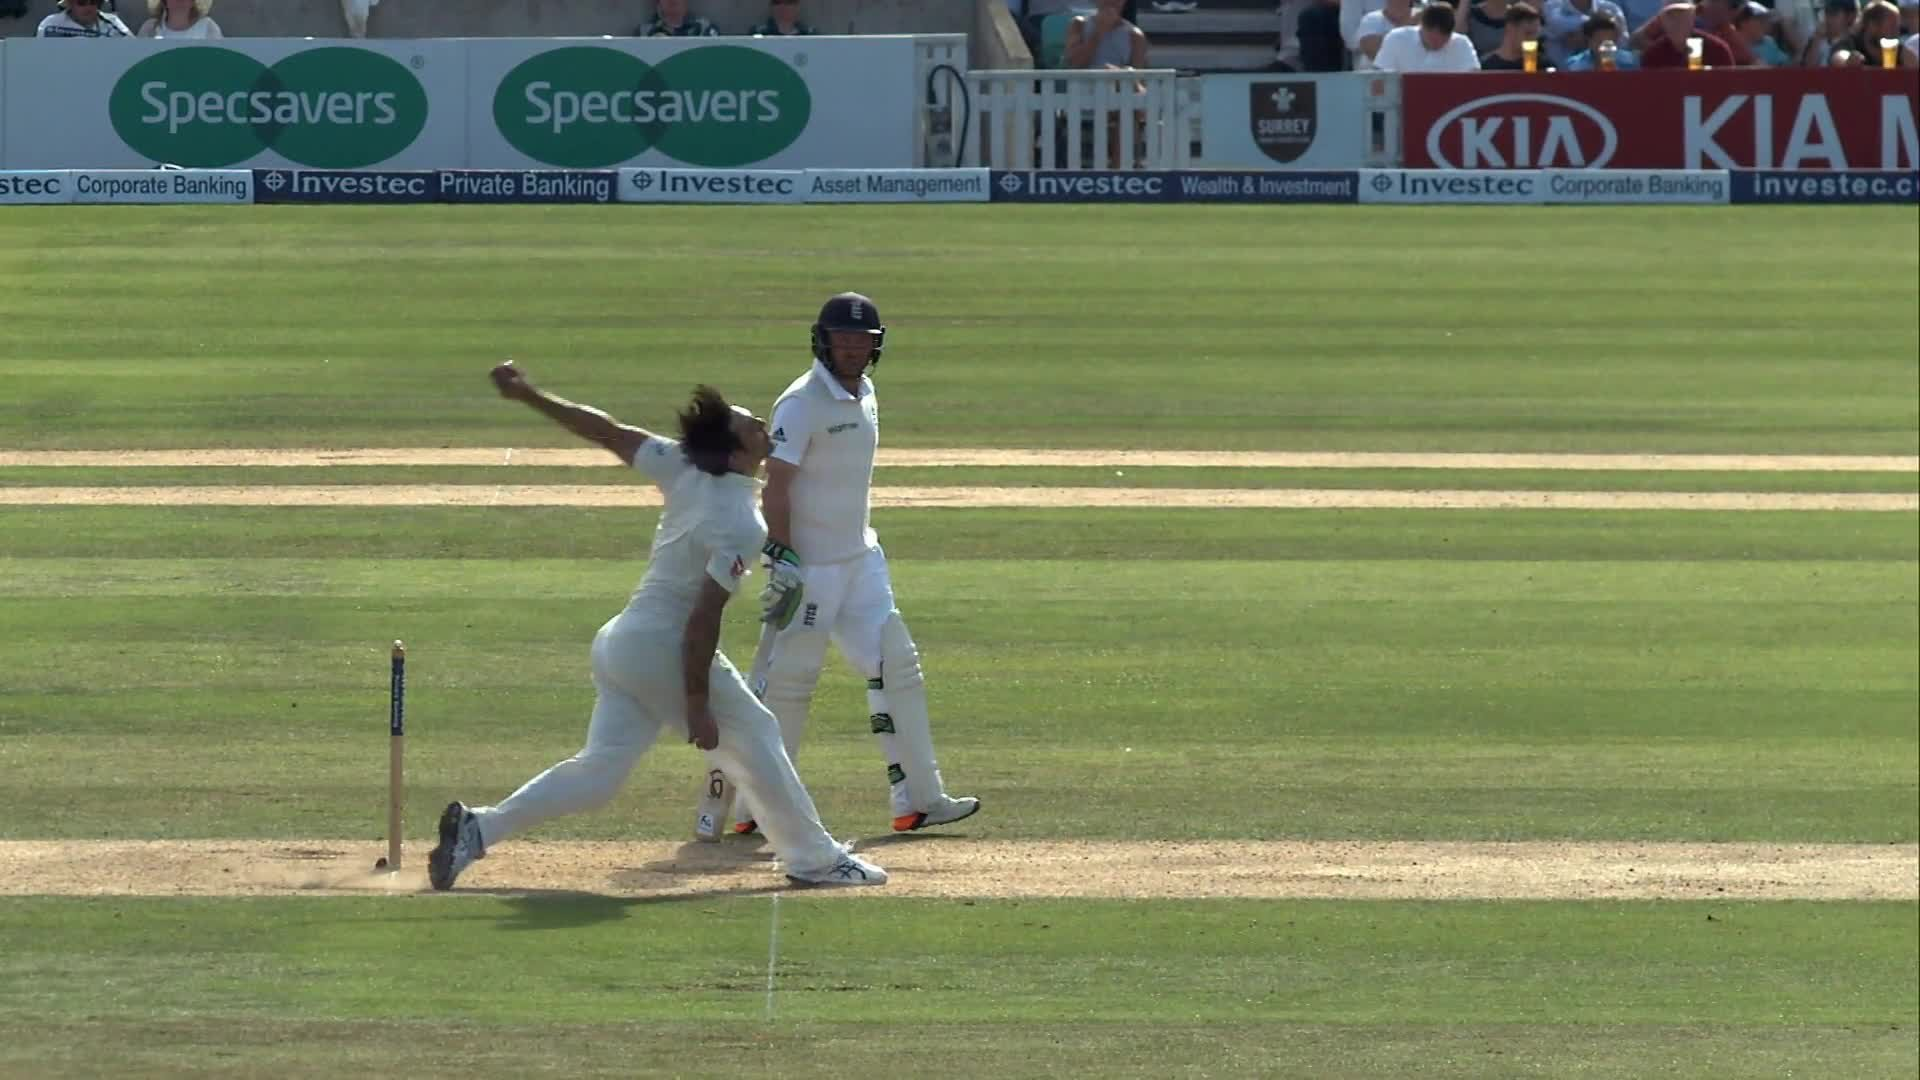 Ever Wondered How The Third Umpire Sees A Cricket Match?